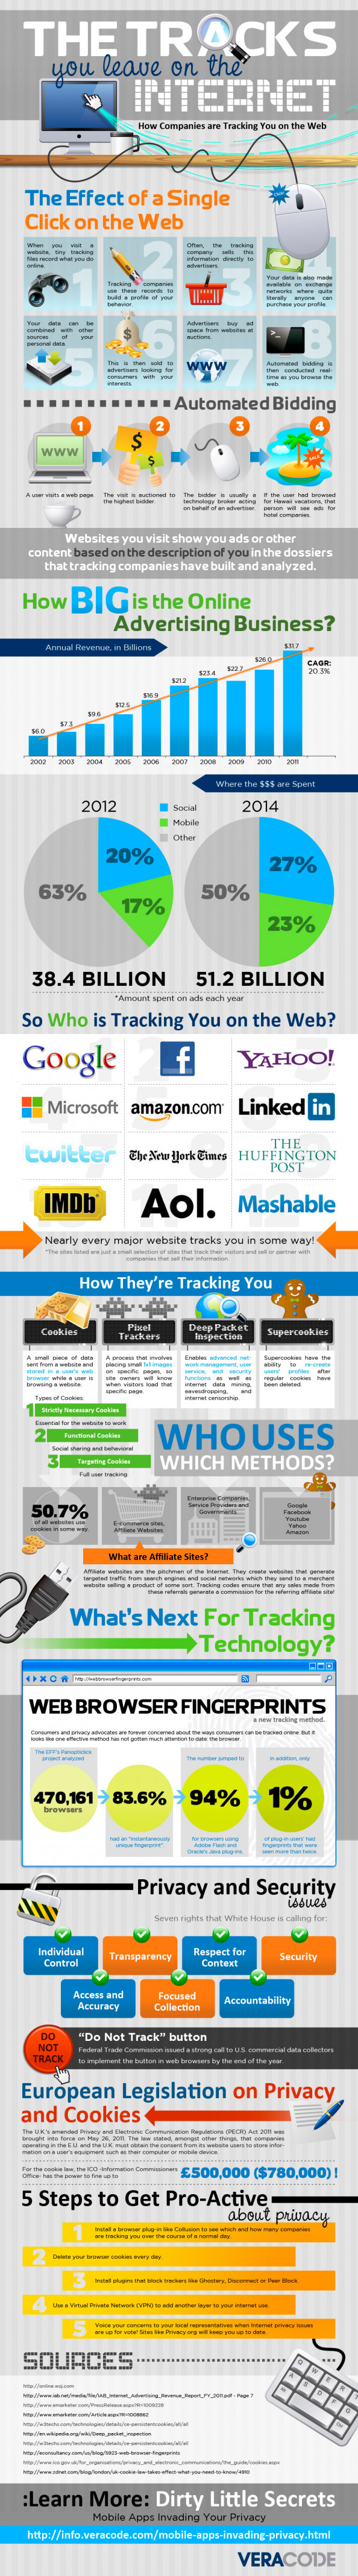 How Companies Track You on the Web Infographic